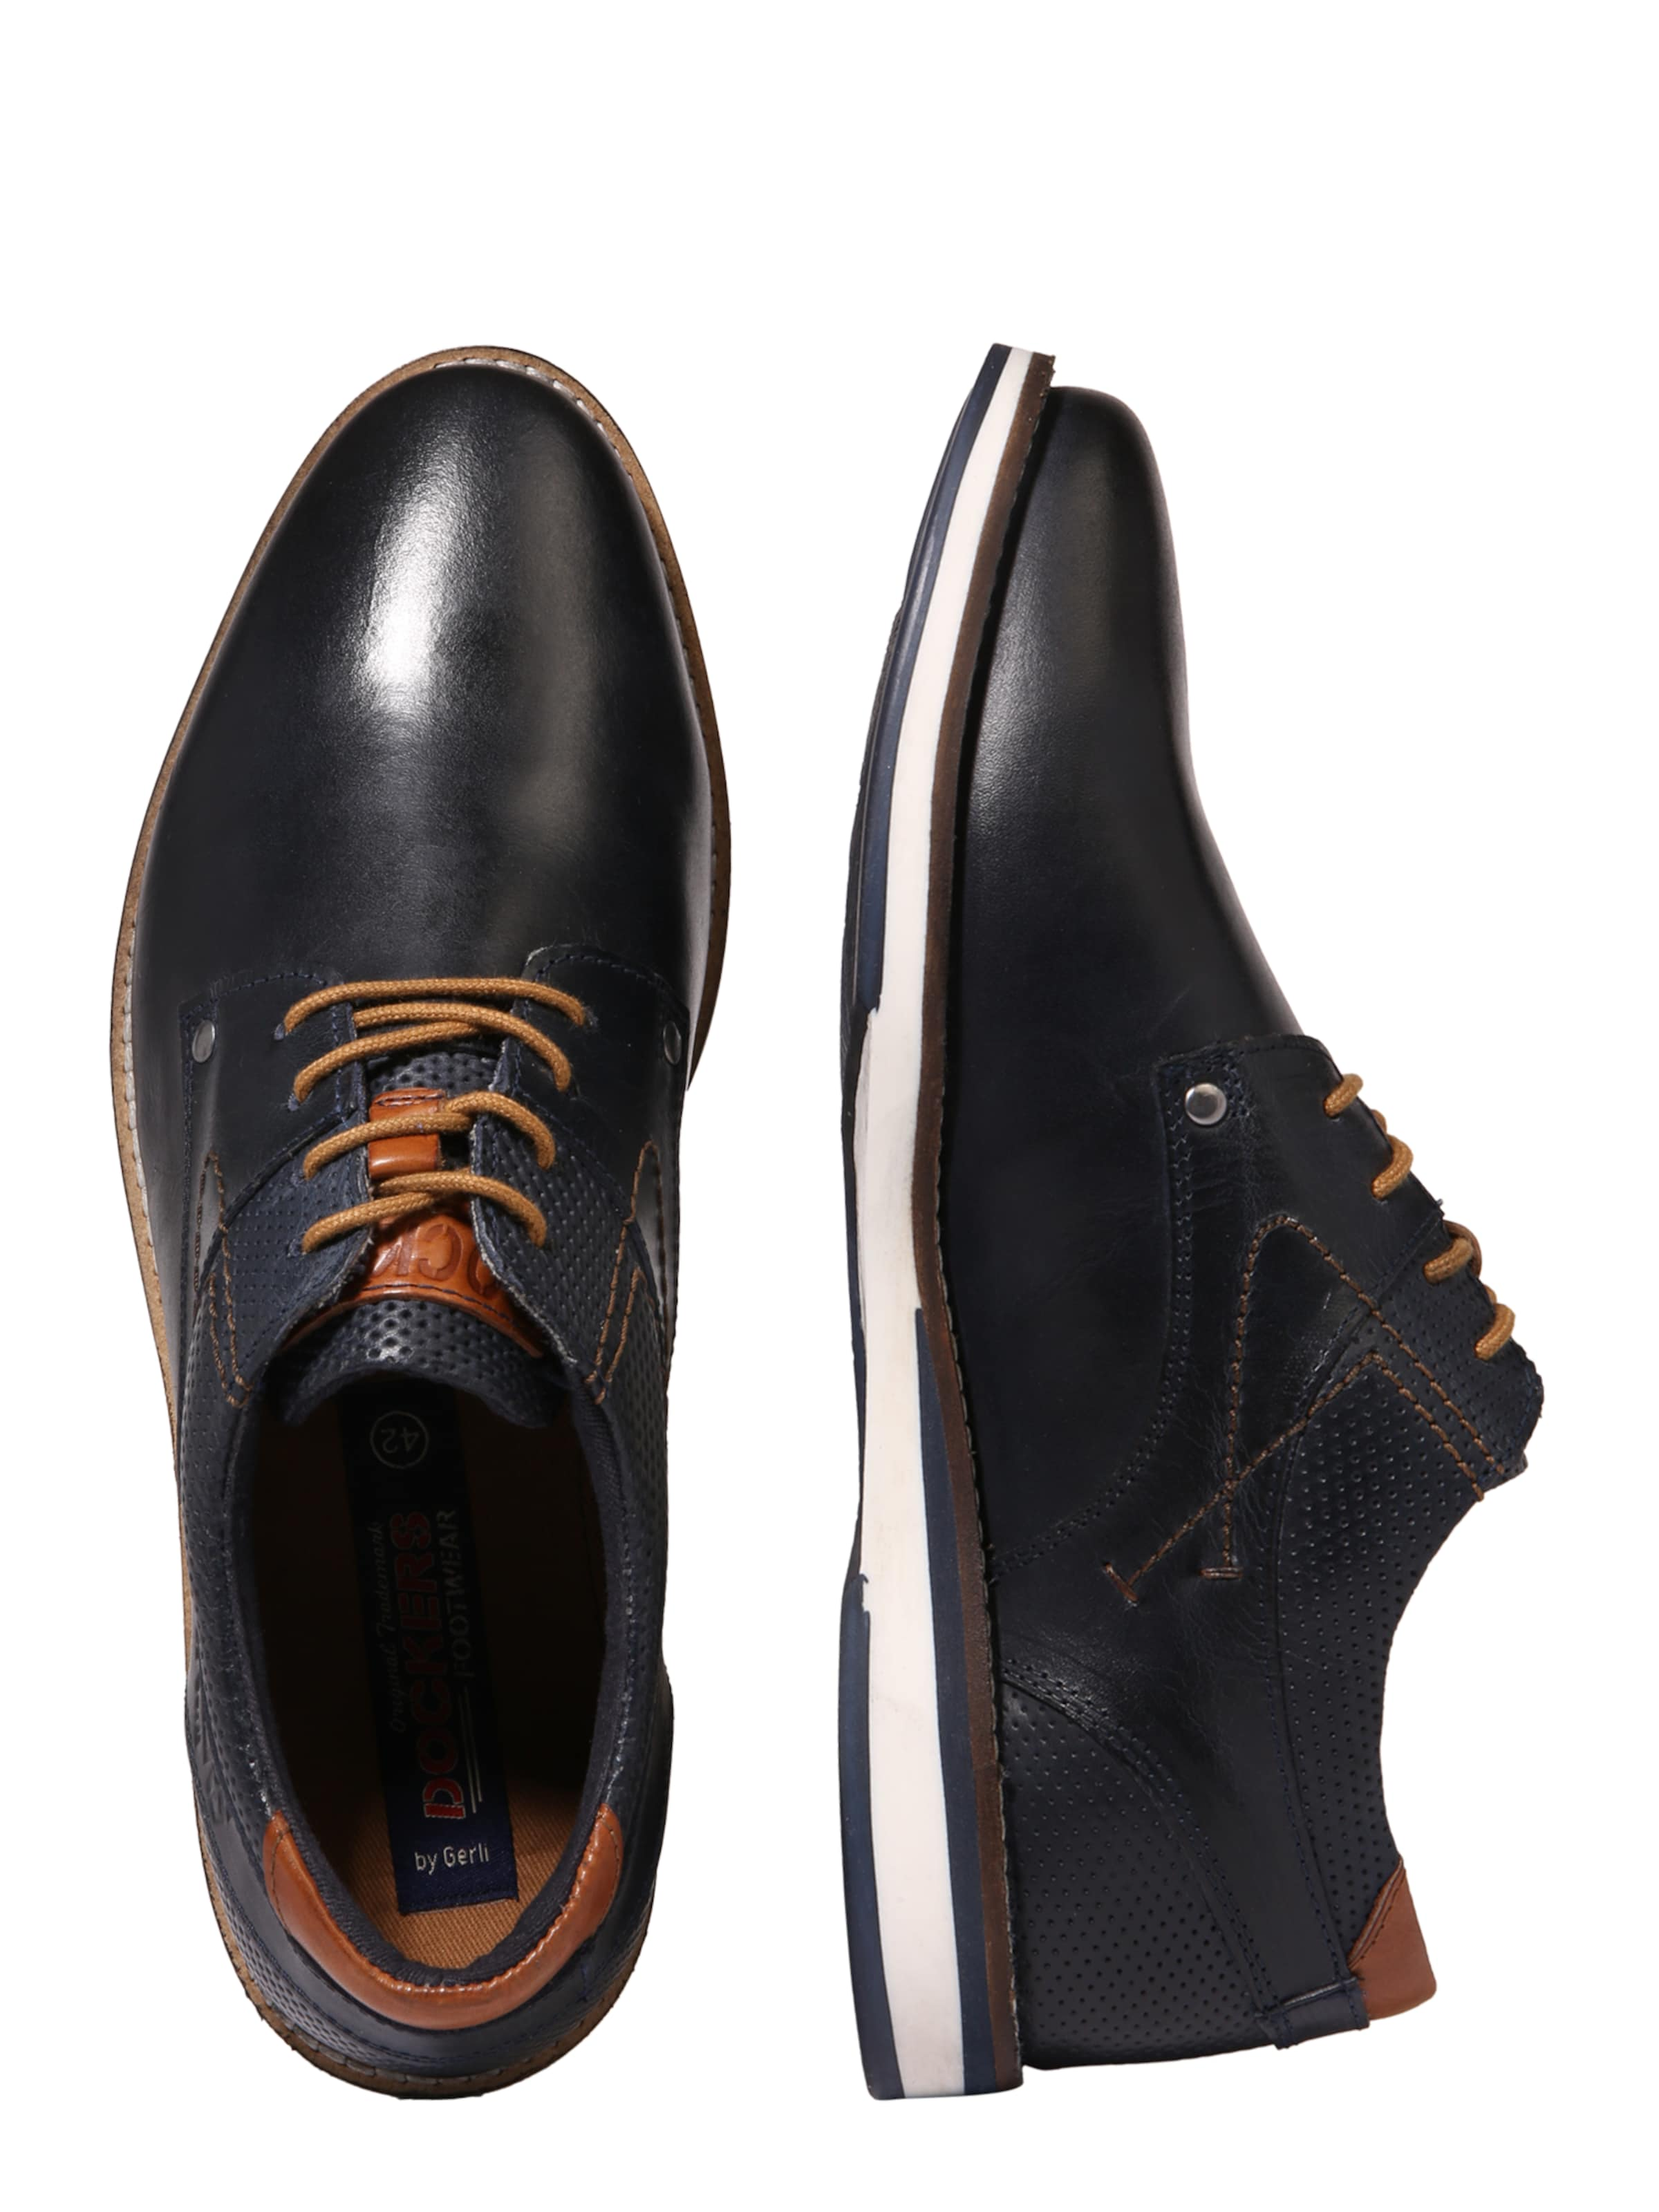 Halbschuhe In NavyCognac Gerli By Dockers XukPiOZT